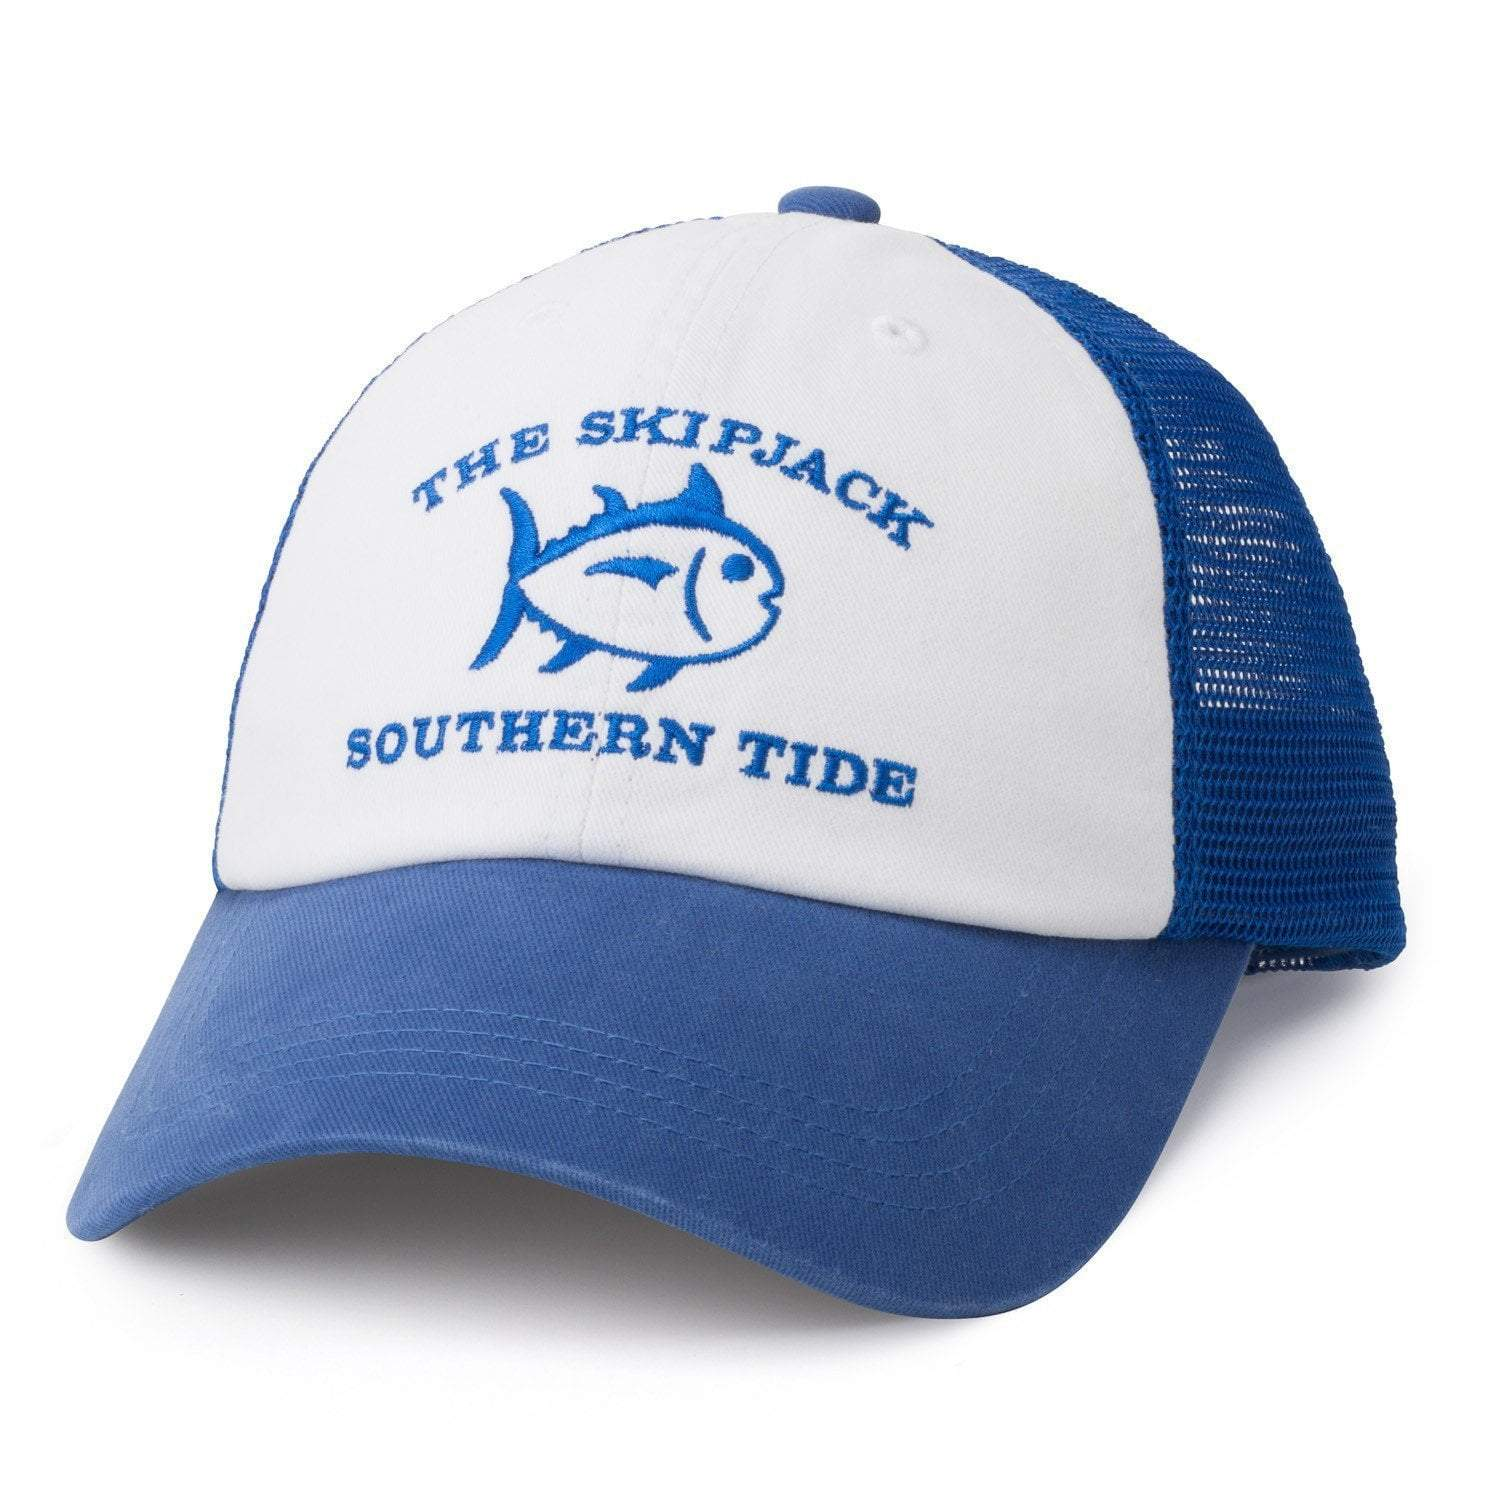 SOUTHERN TIDE Men's Hats WHITE ROYAL / Adult Southern Tide Skipjack Trucker Hat - Royal Blue || David's Clothing 1964WR